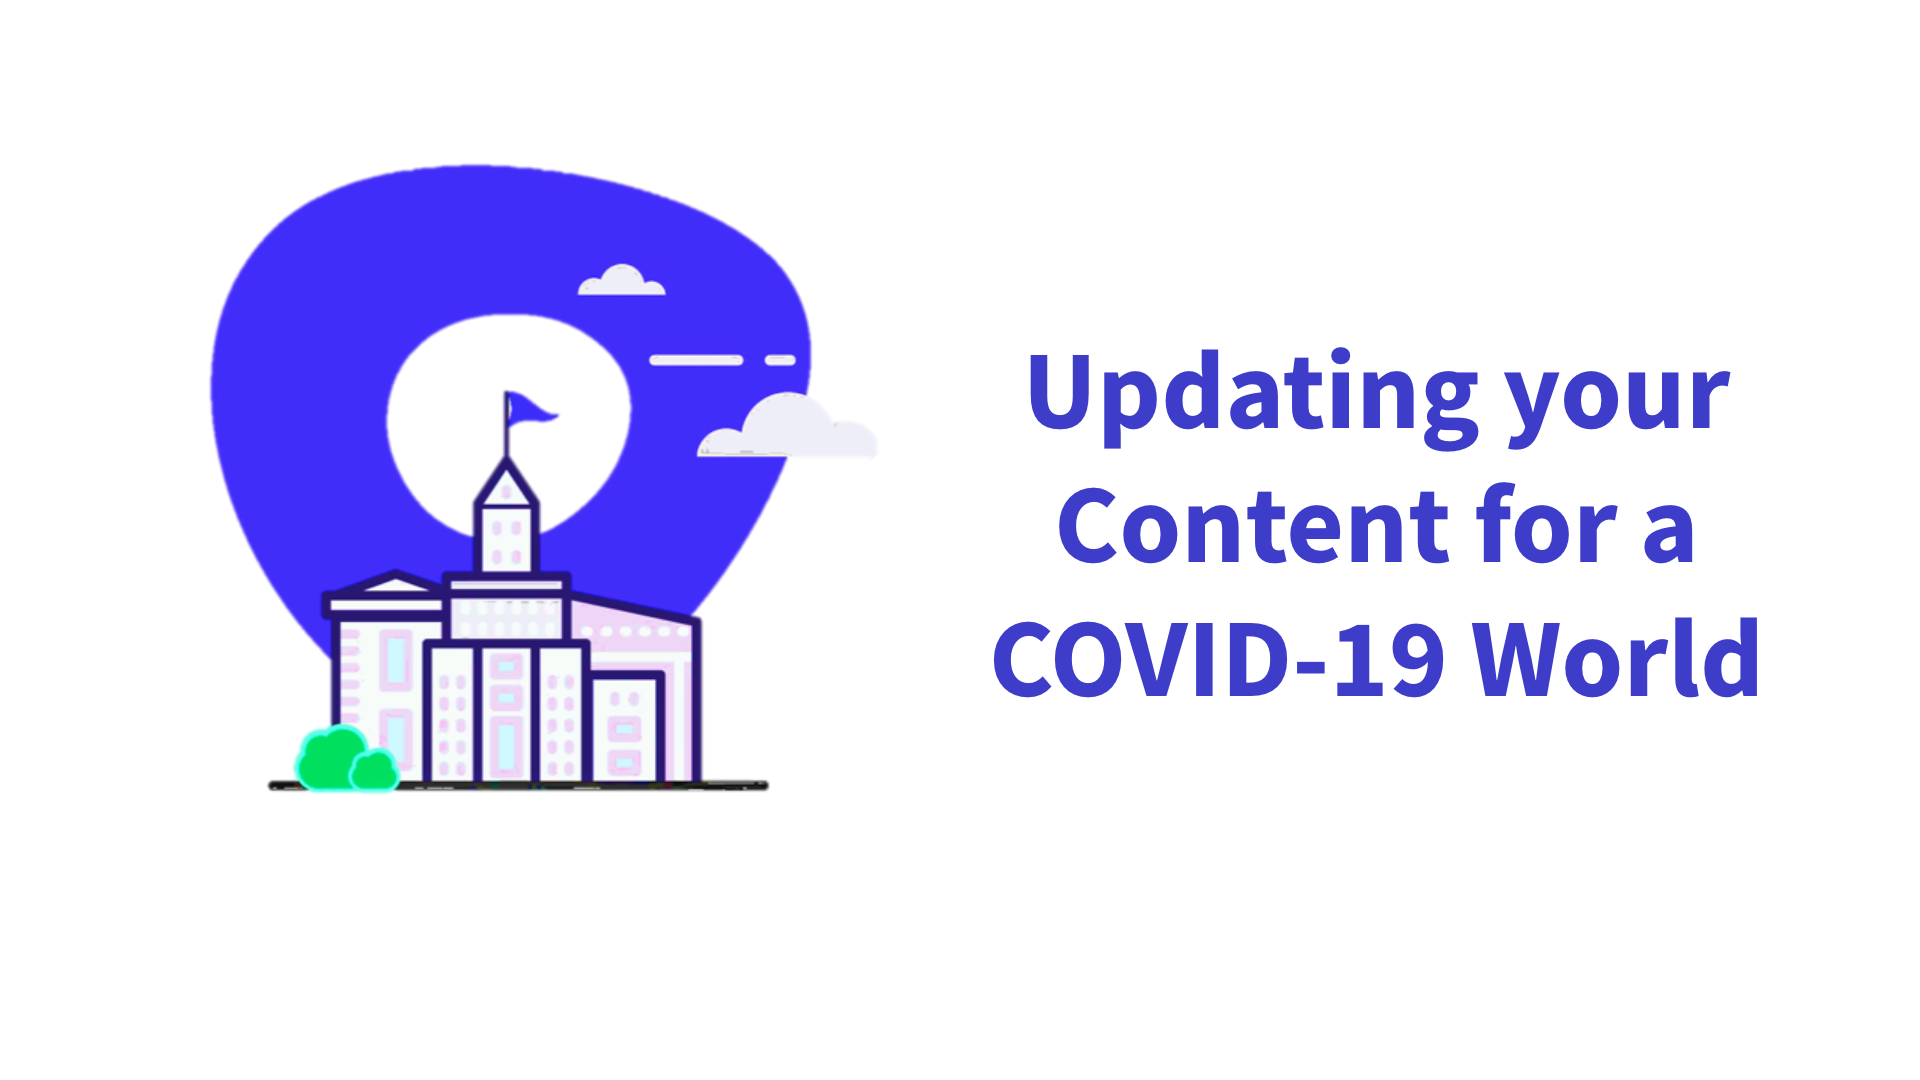 Updating Your Content for a COVID-19 World